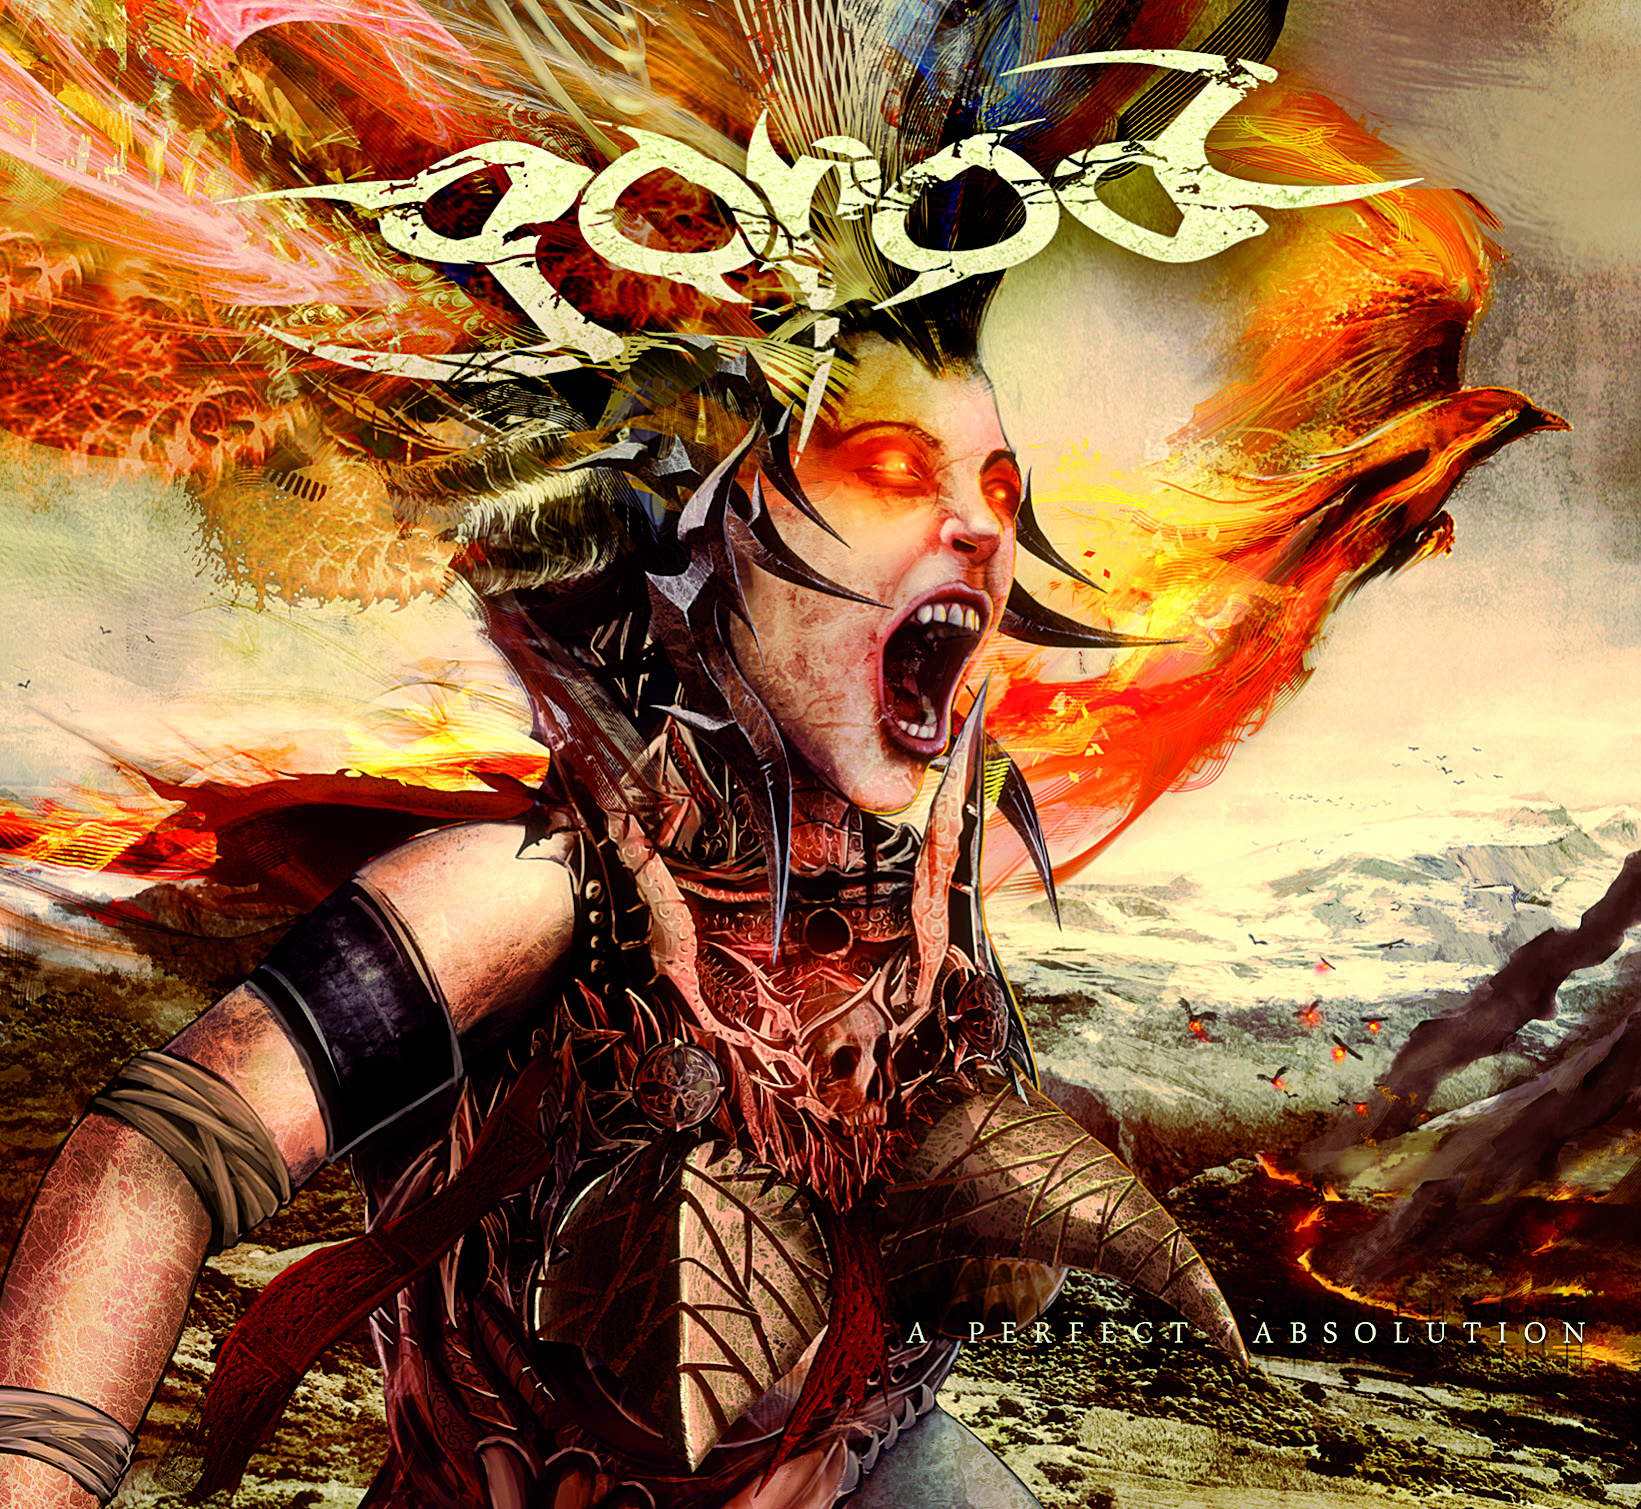 Gorod – A Perfect Absolution Review